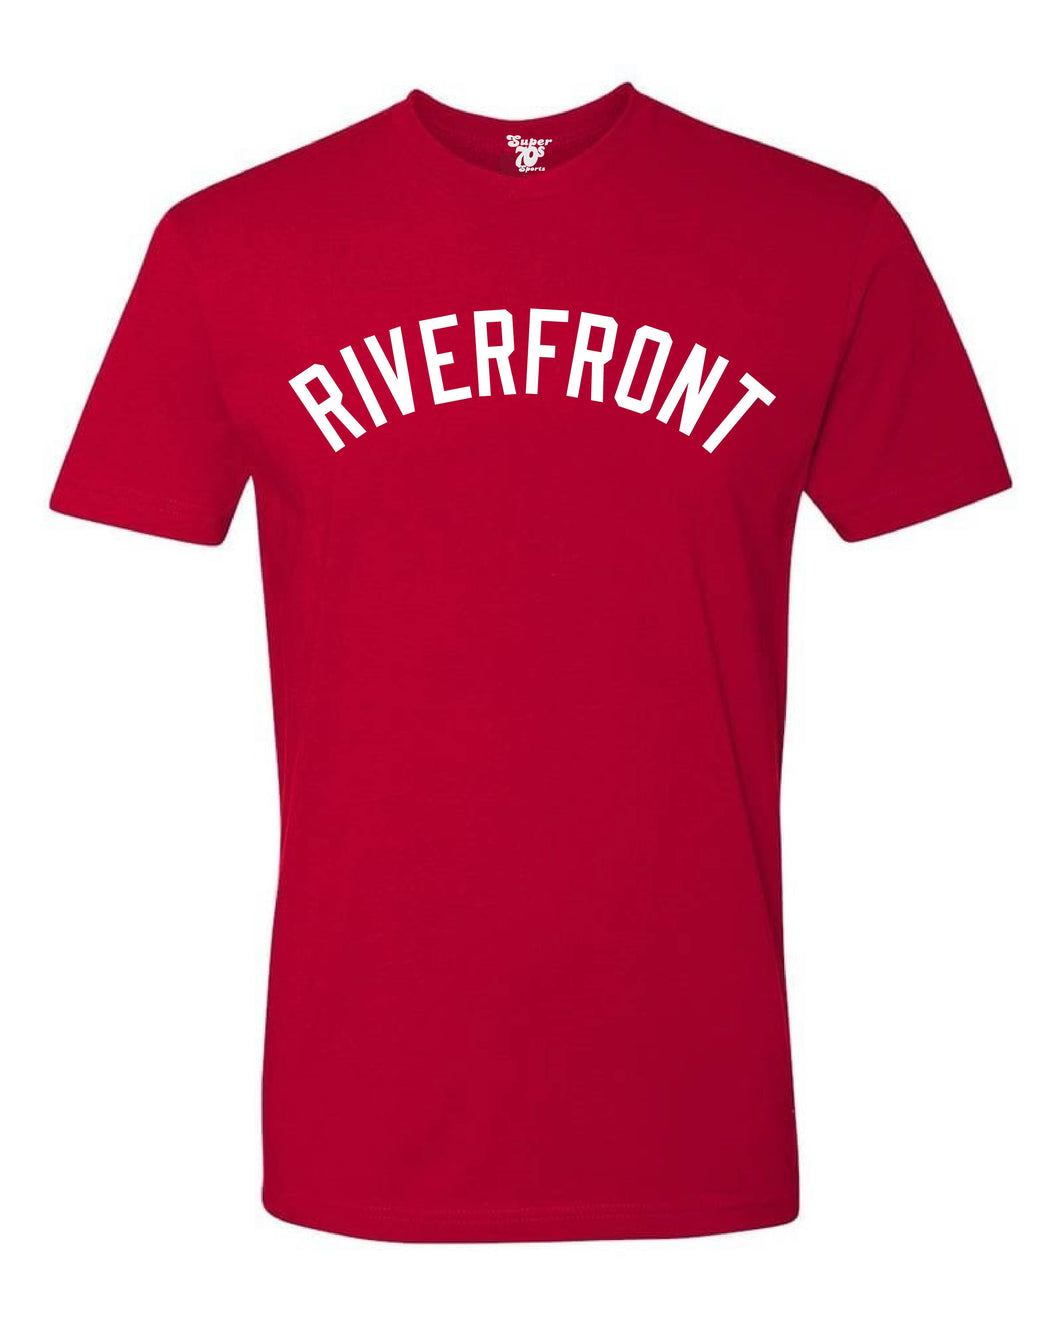 Riverfront Tee